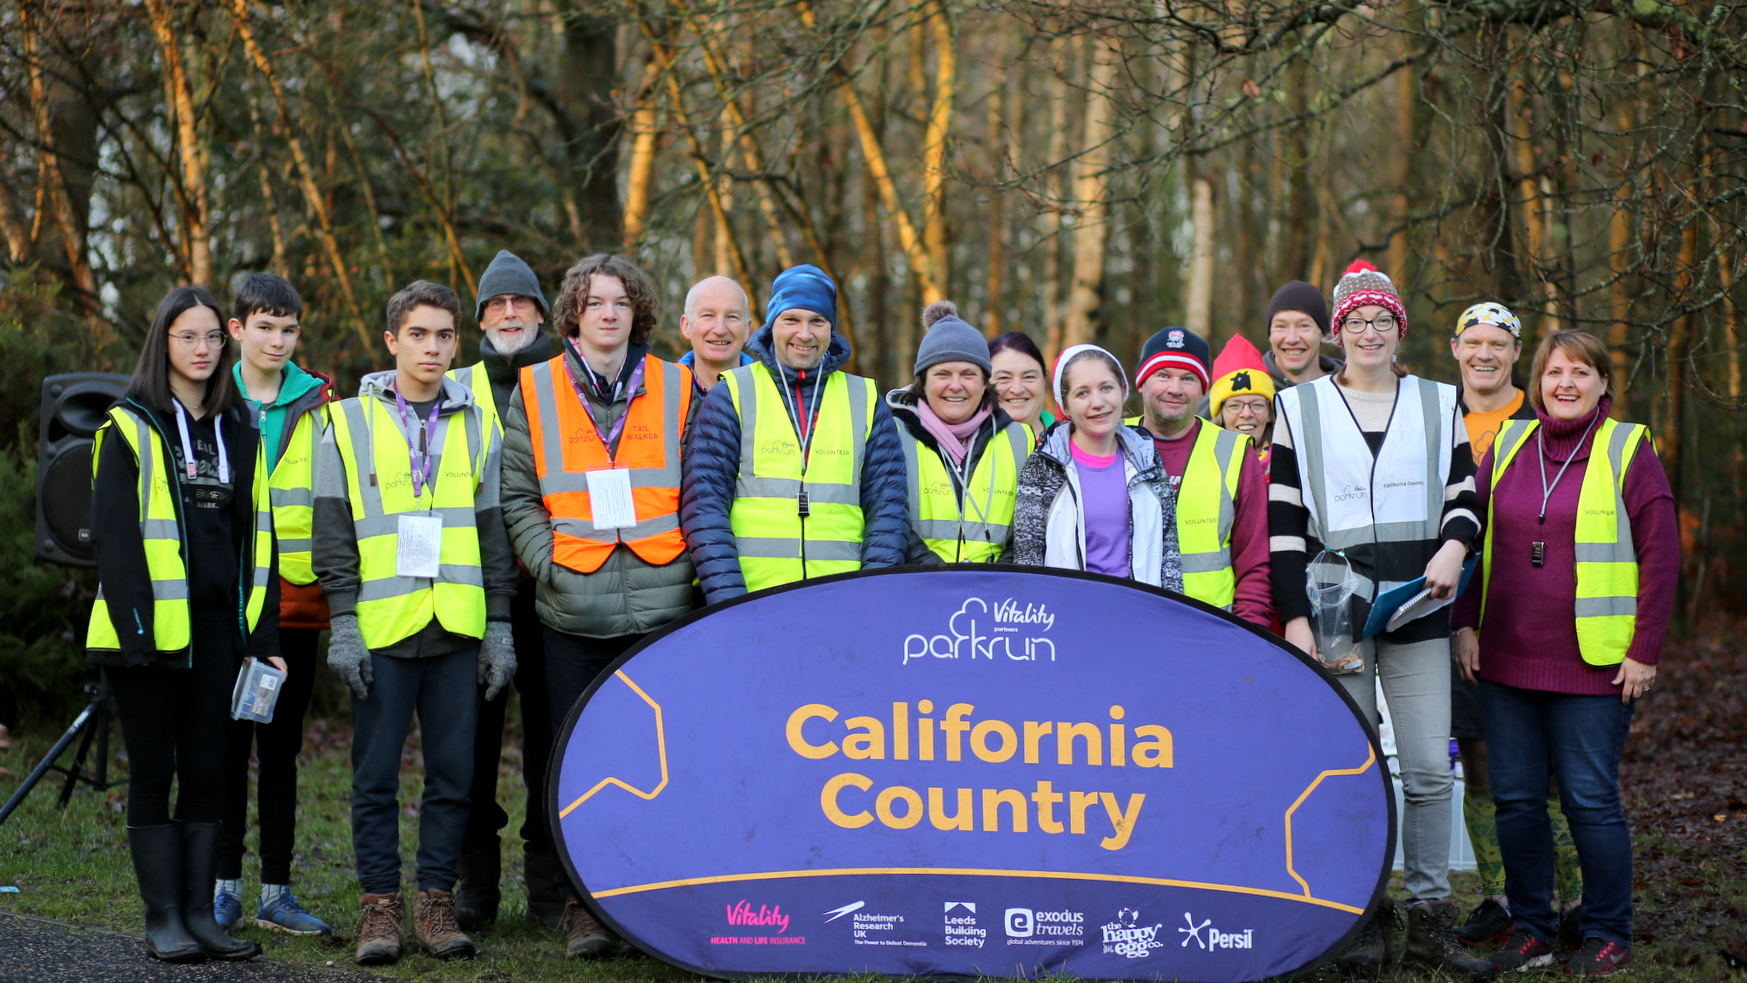 David and 15 other volunteers stand in a line behind the California Country parkrun sign all wearing high visibility  vests